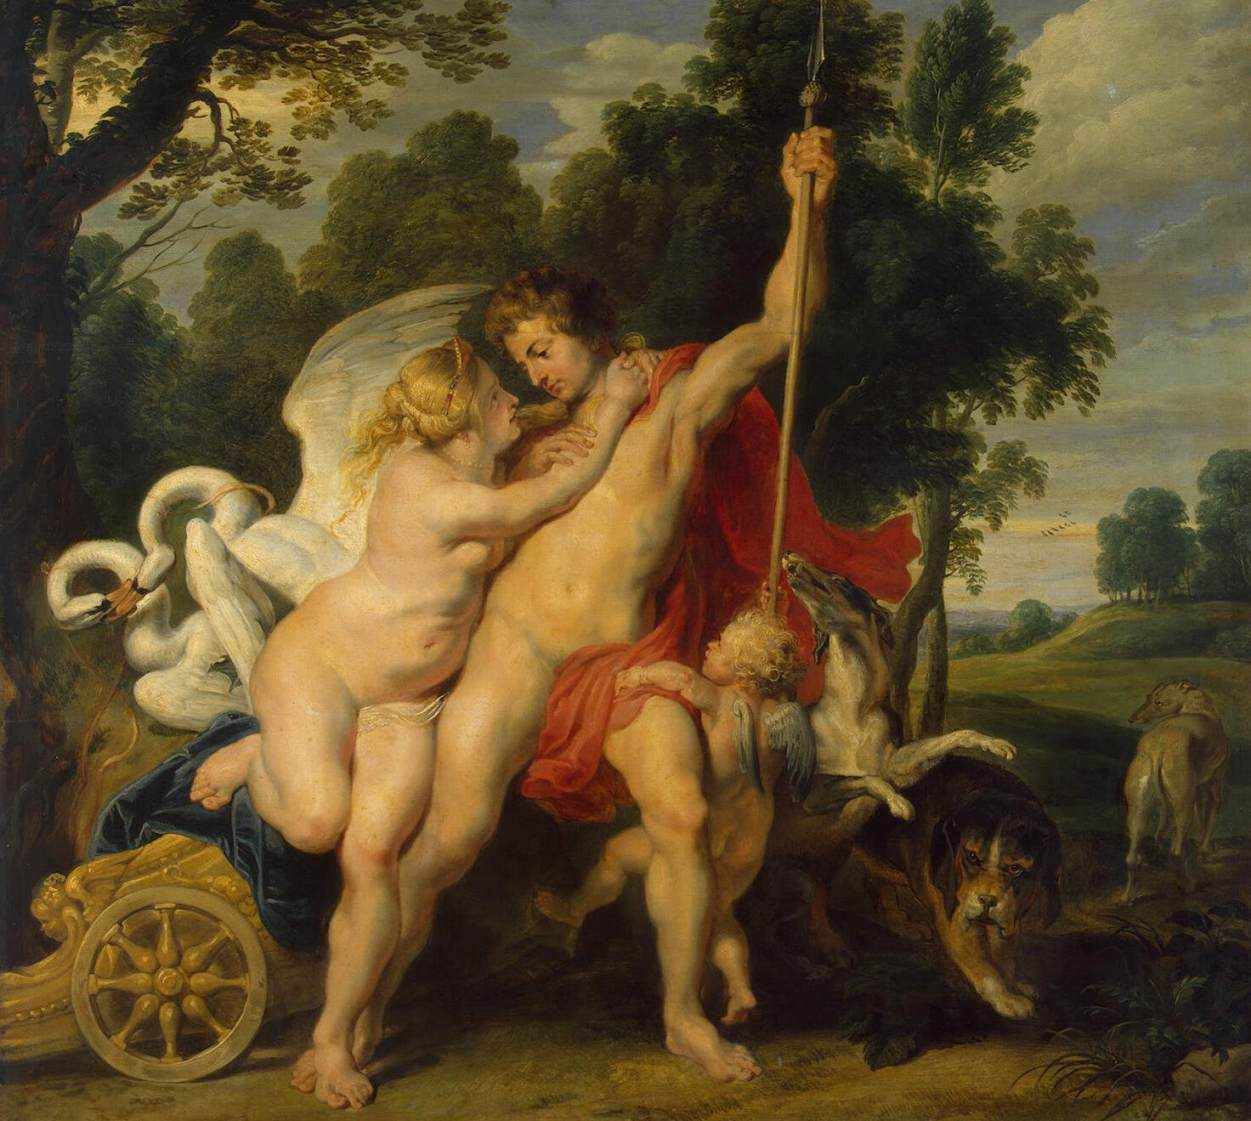 Venus and Adonis by Peter Paul Rubens Reproduction Oil Painting on Canvas